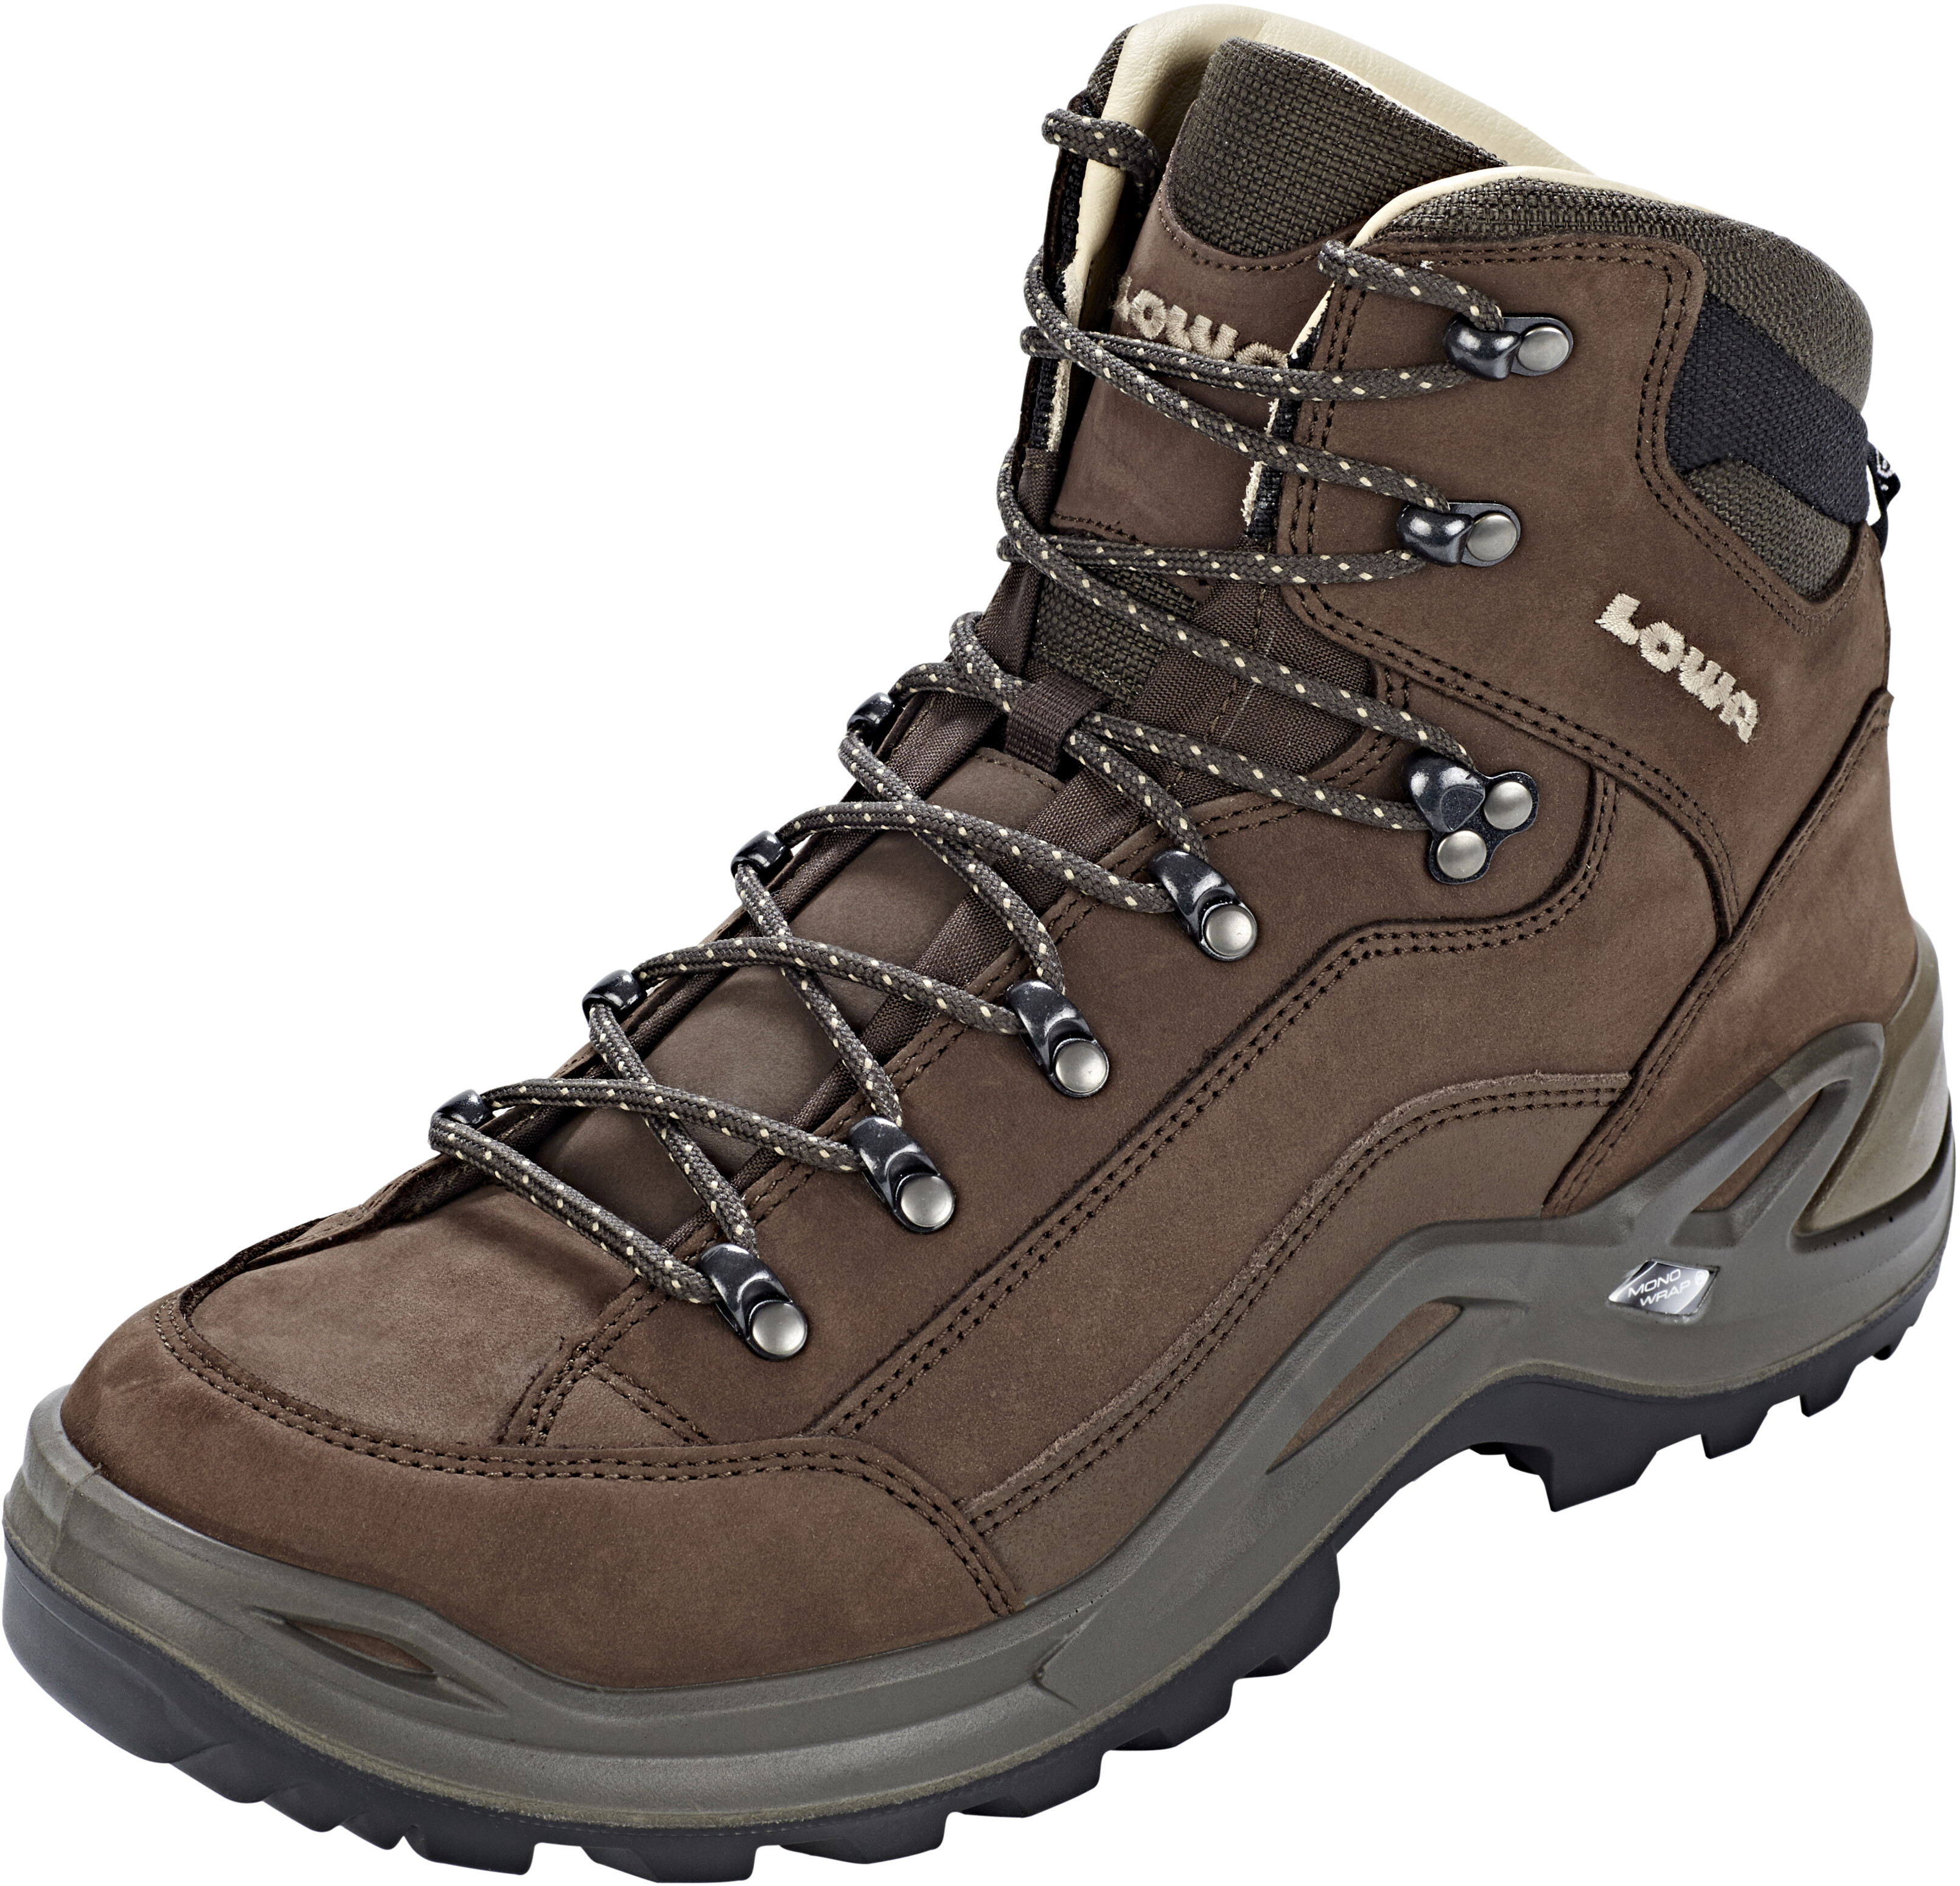 7492ddb0a9c Lowa Renegade LL - Chaussures Homme - marron sur CAMPZ !